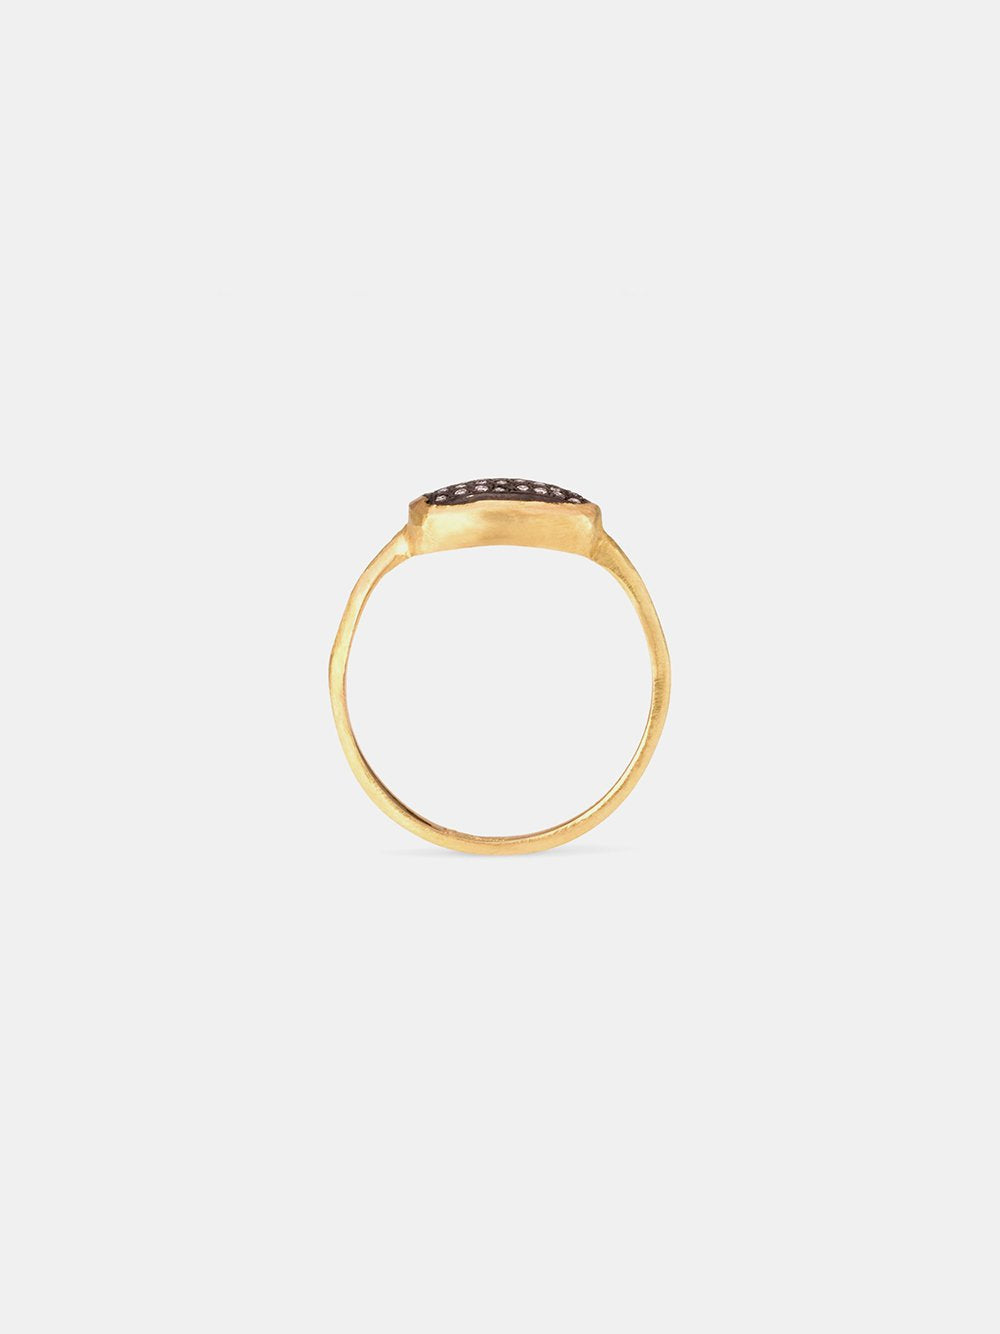 satomi kawakita 18k yellow gold ring with oxidized silver + diamonds